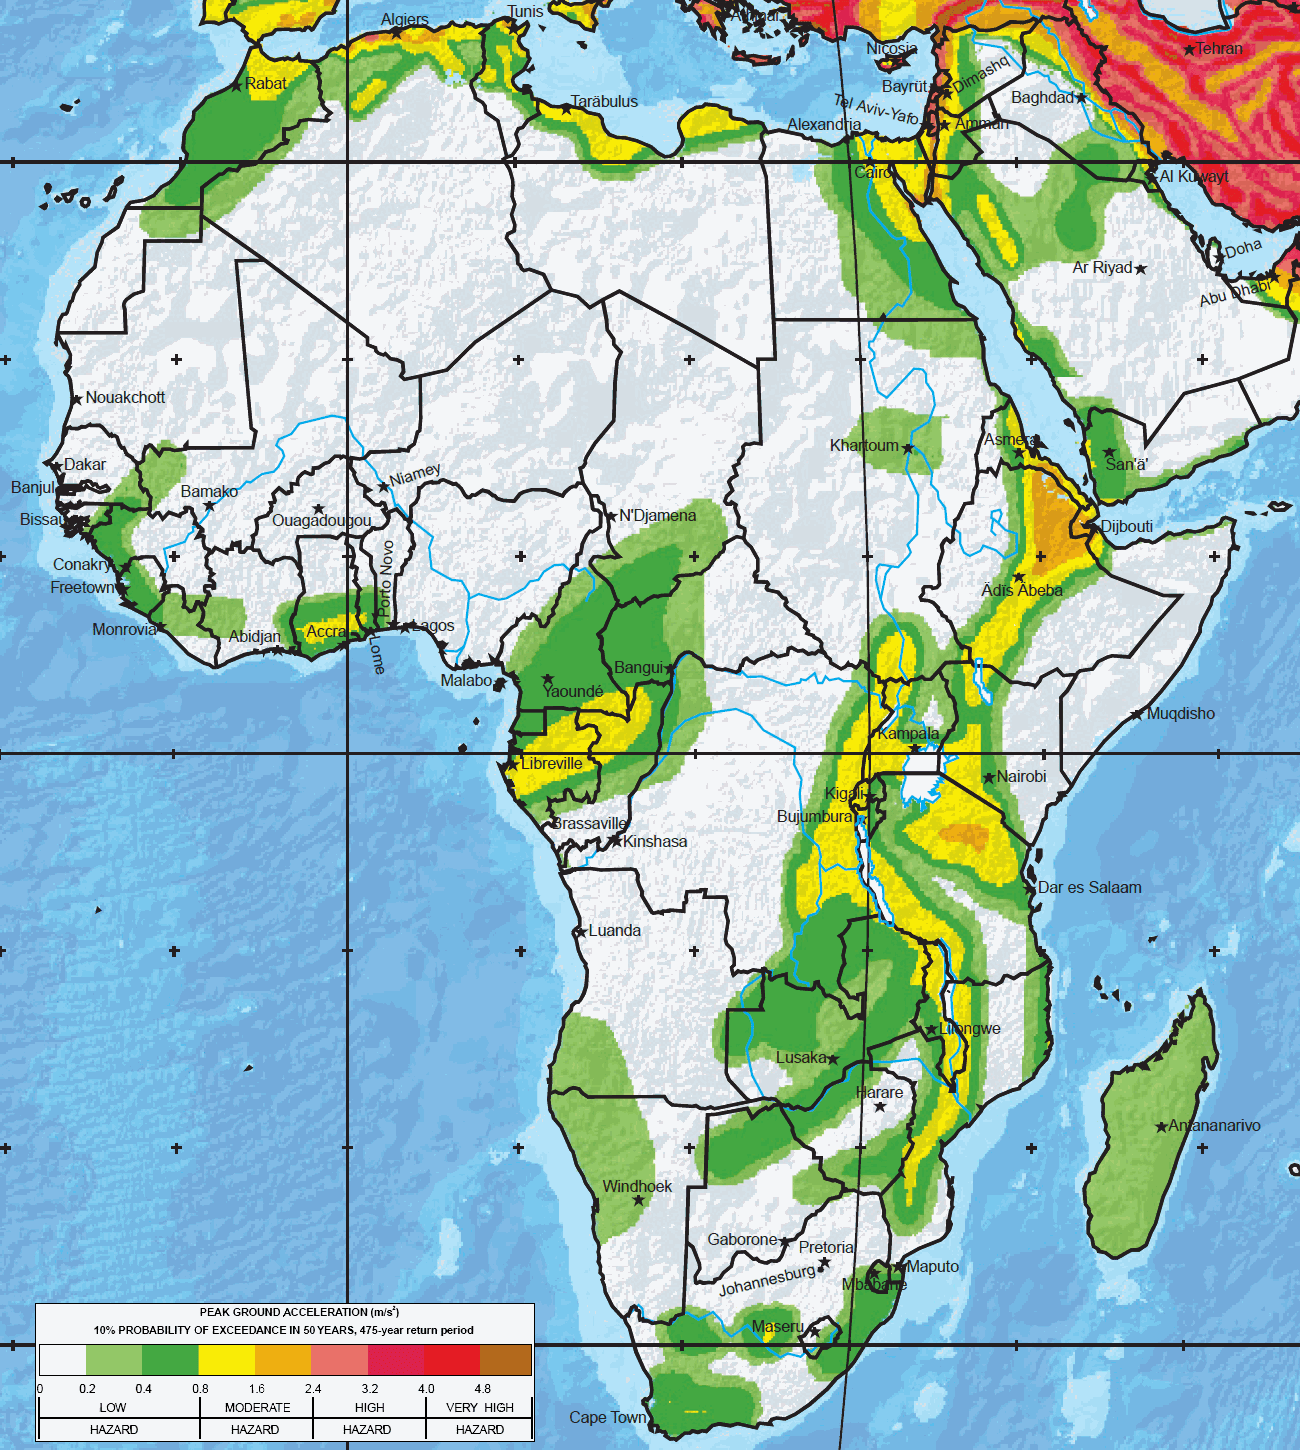 Major earthquake zones on each continent gumiabroncs Image collections